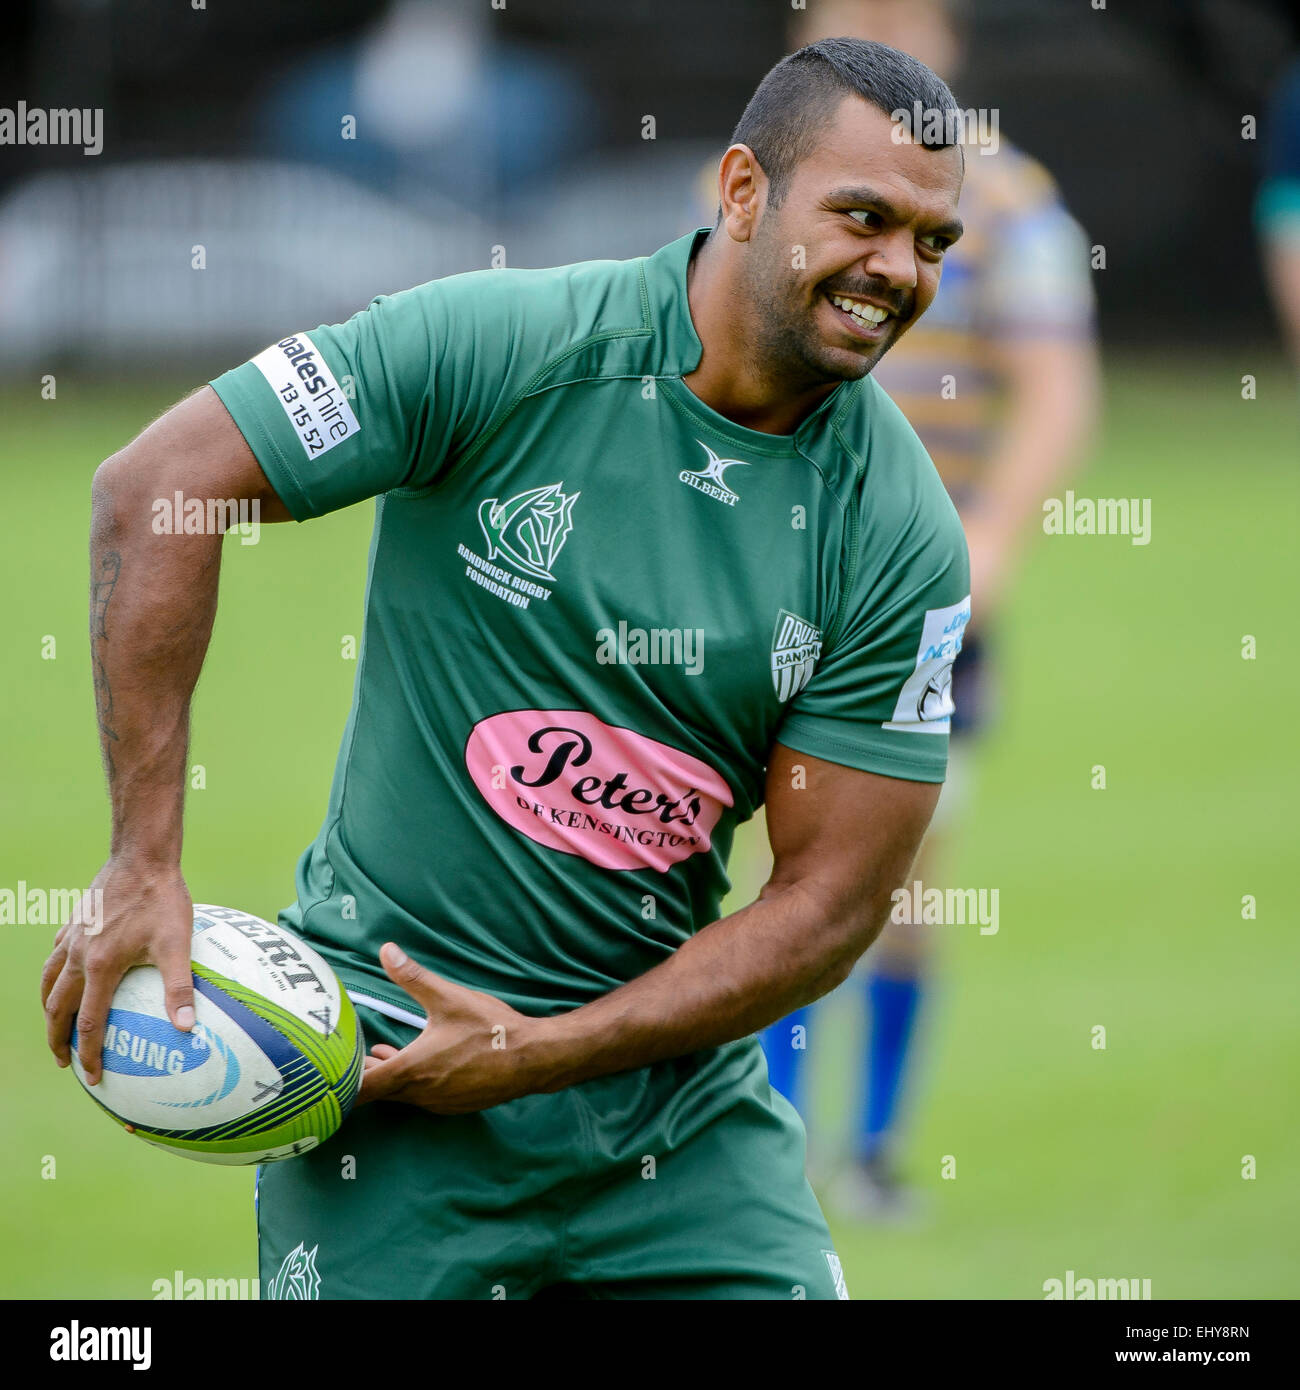 Kurtley Beale Impressed For Randwick Against Sydney: Union Club Stock Photos & Union Club Stock Images